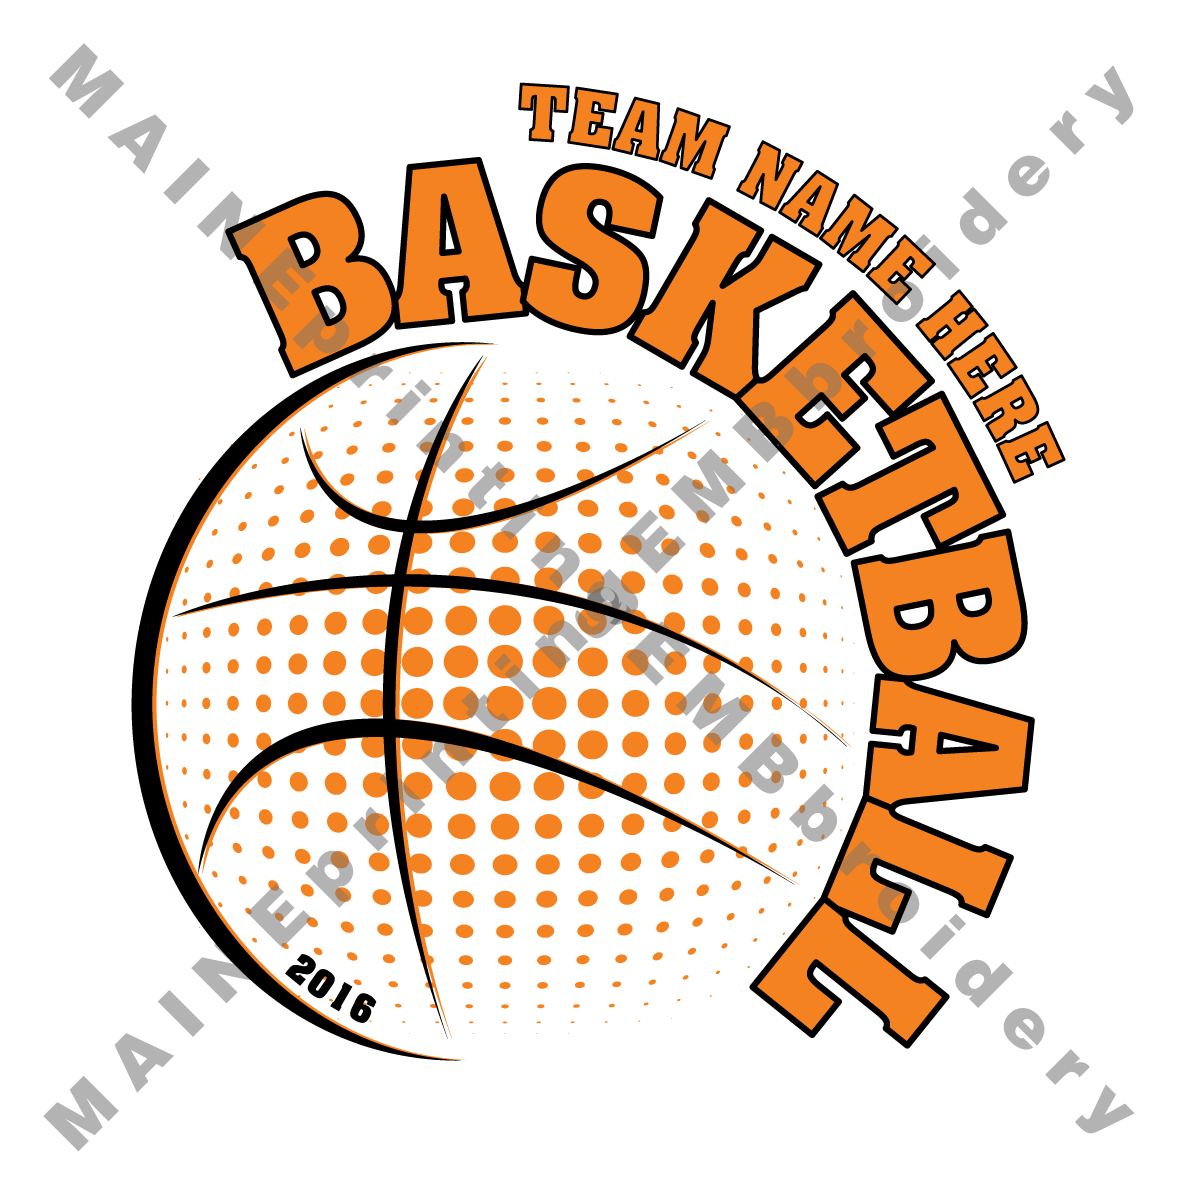 Basketball T Shirt Design Ideas basketball design ideas Basketball Shirt Design